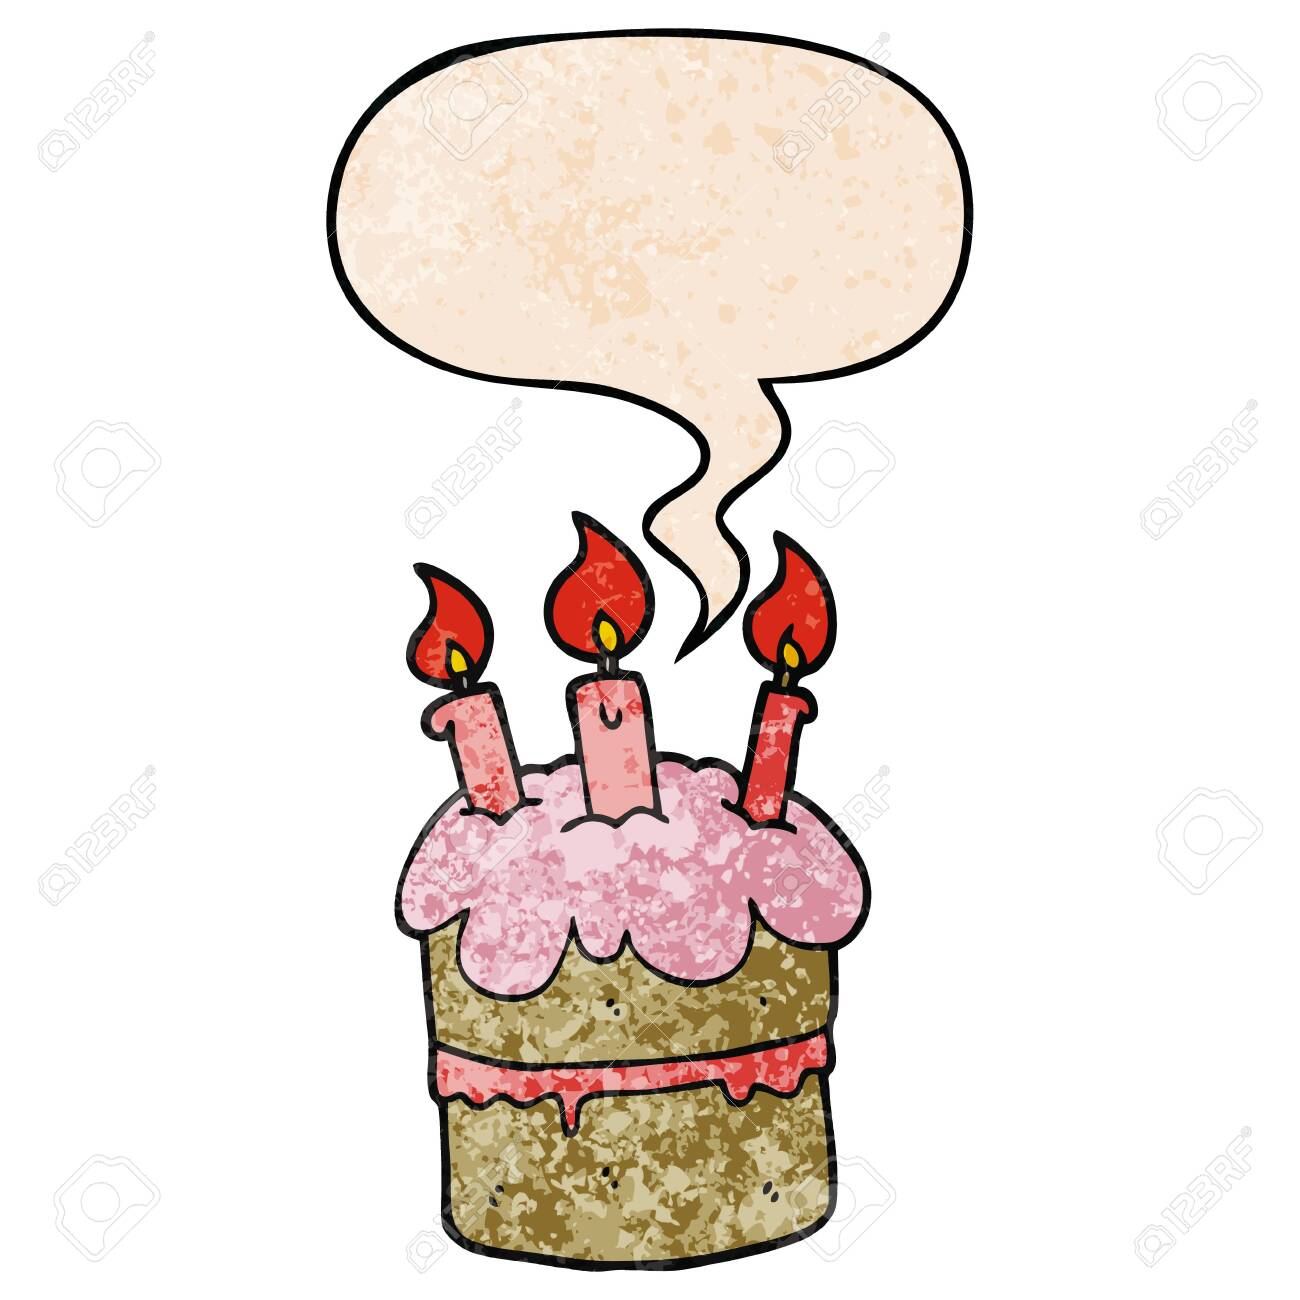 Super Cartoon Birthday Cake With Speech Bubble In Retro Texture Style Personalised Birthday Cards Paralily Jamesorg